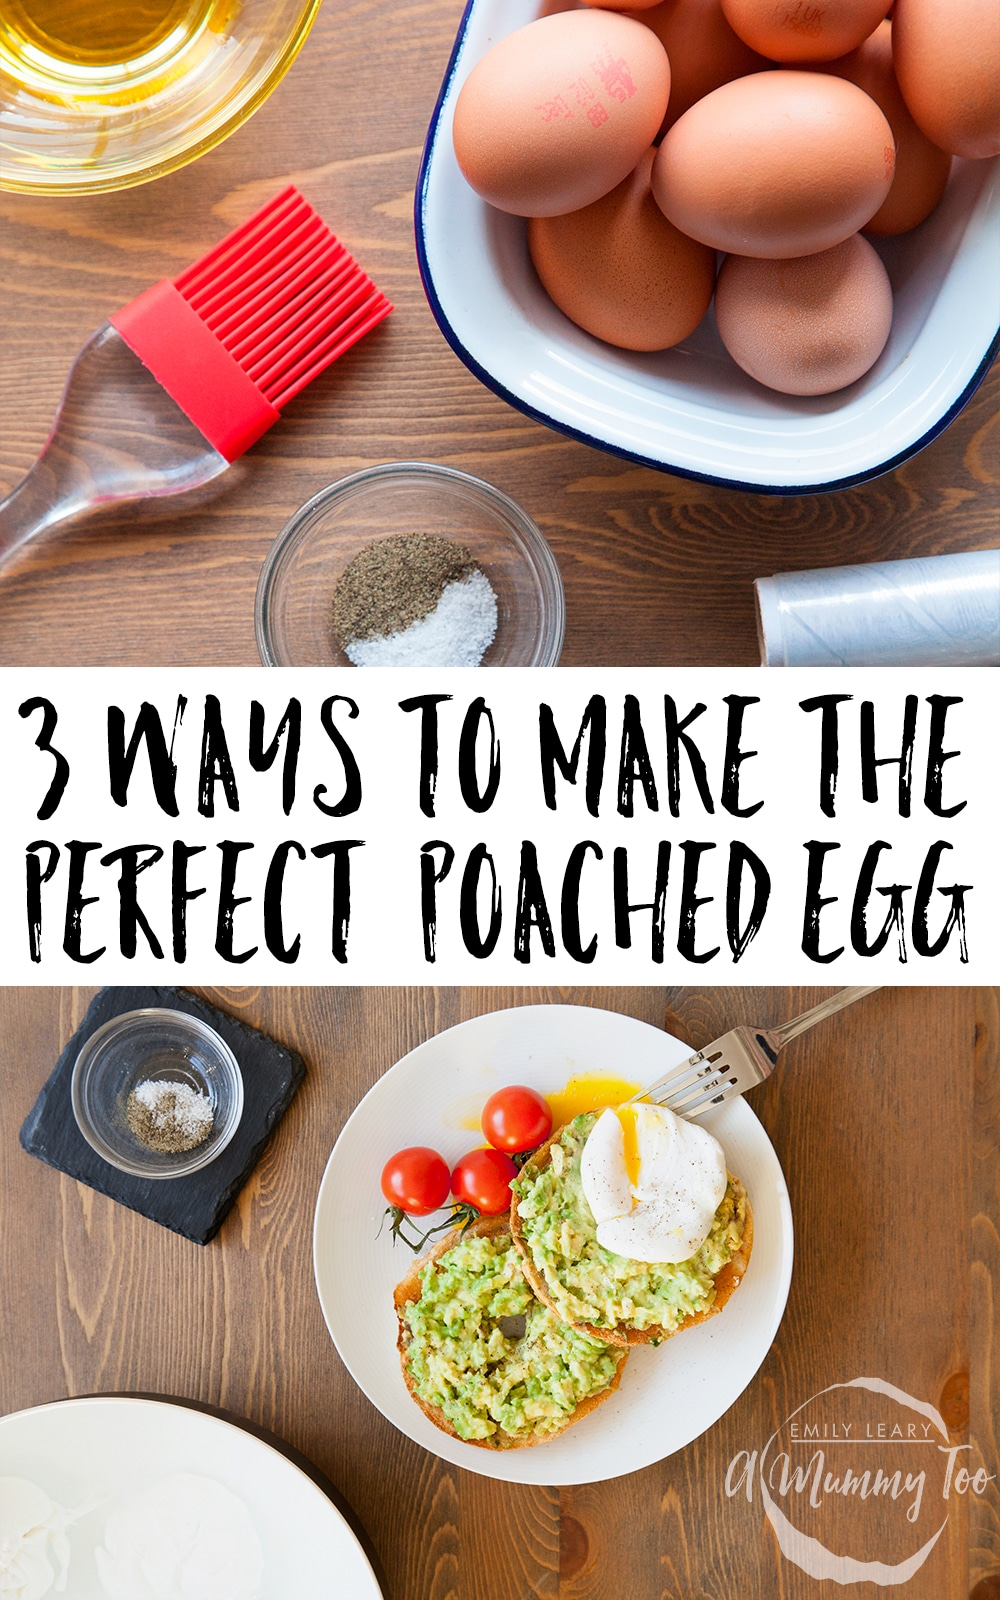 make-the-perfect-poached-egg